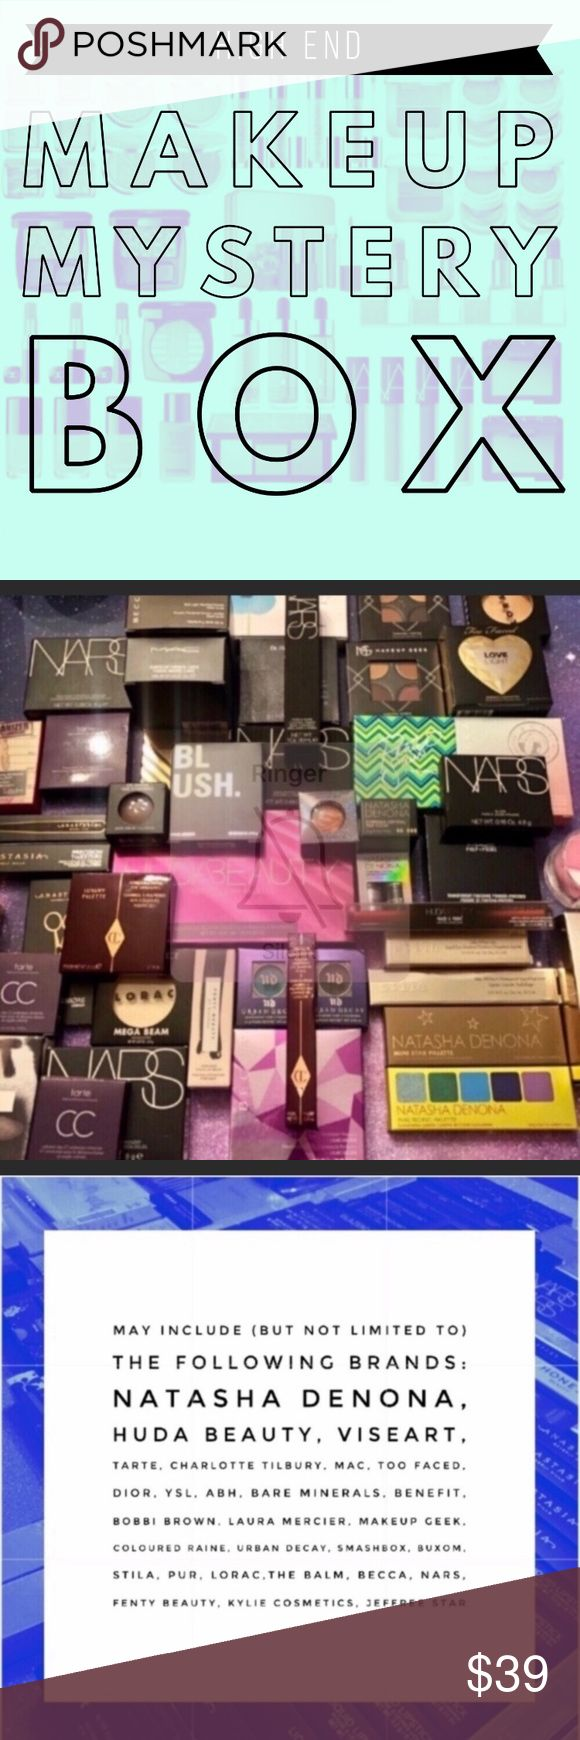 HIGH END MAKEUP MYSTERY BOX ** AVAILABLE AT THIS PRICE